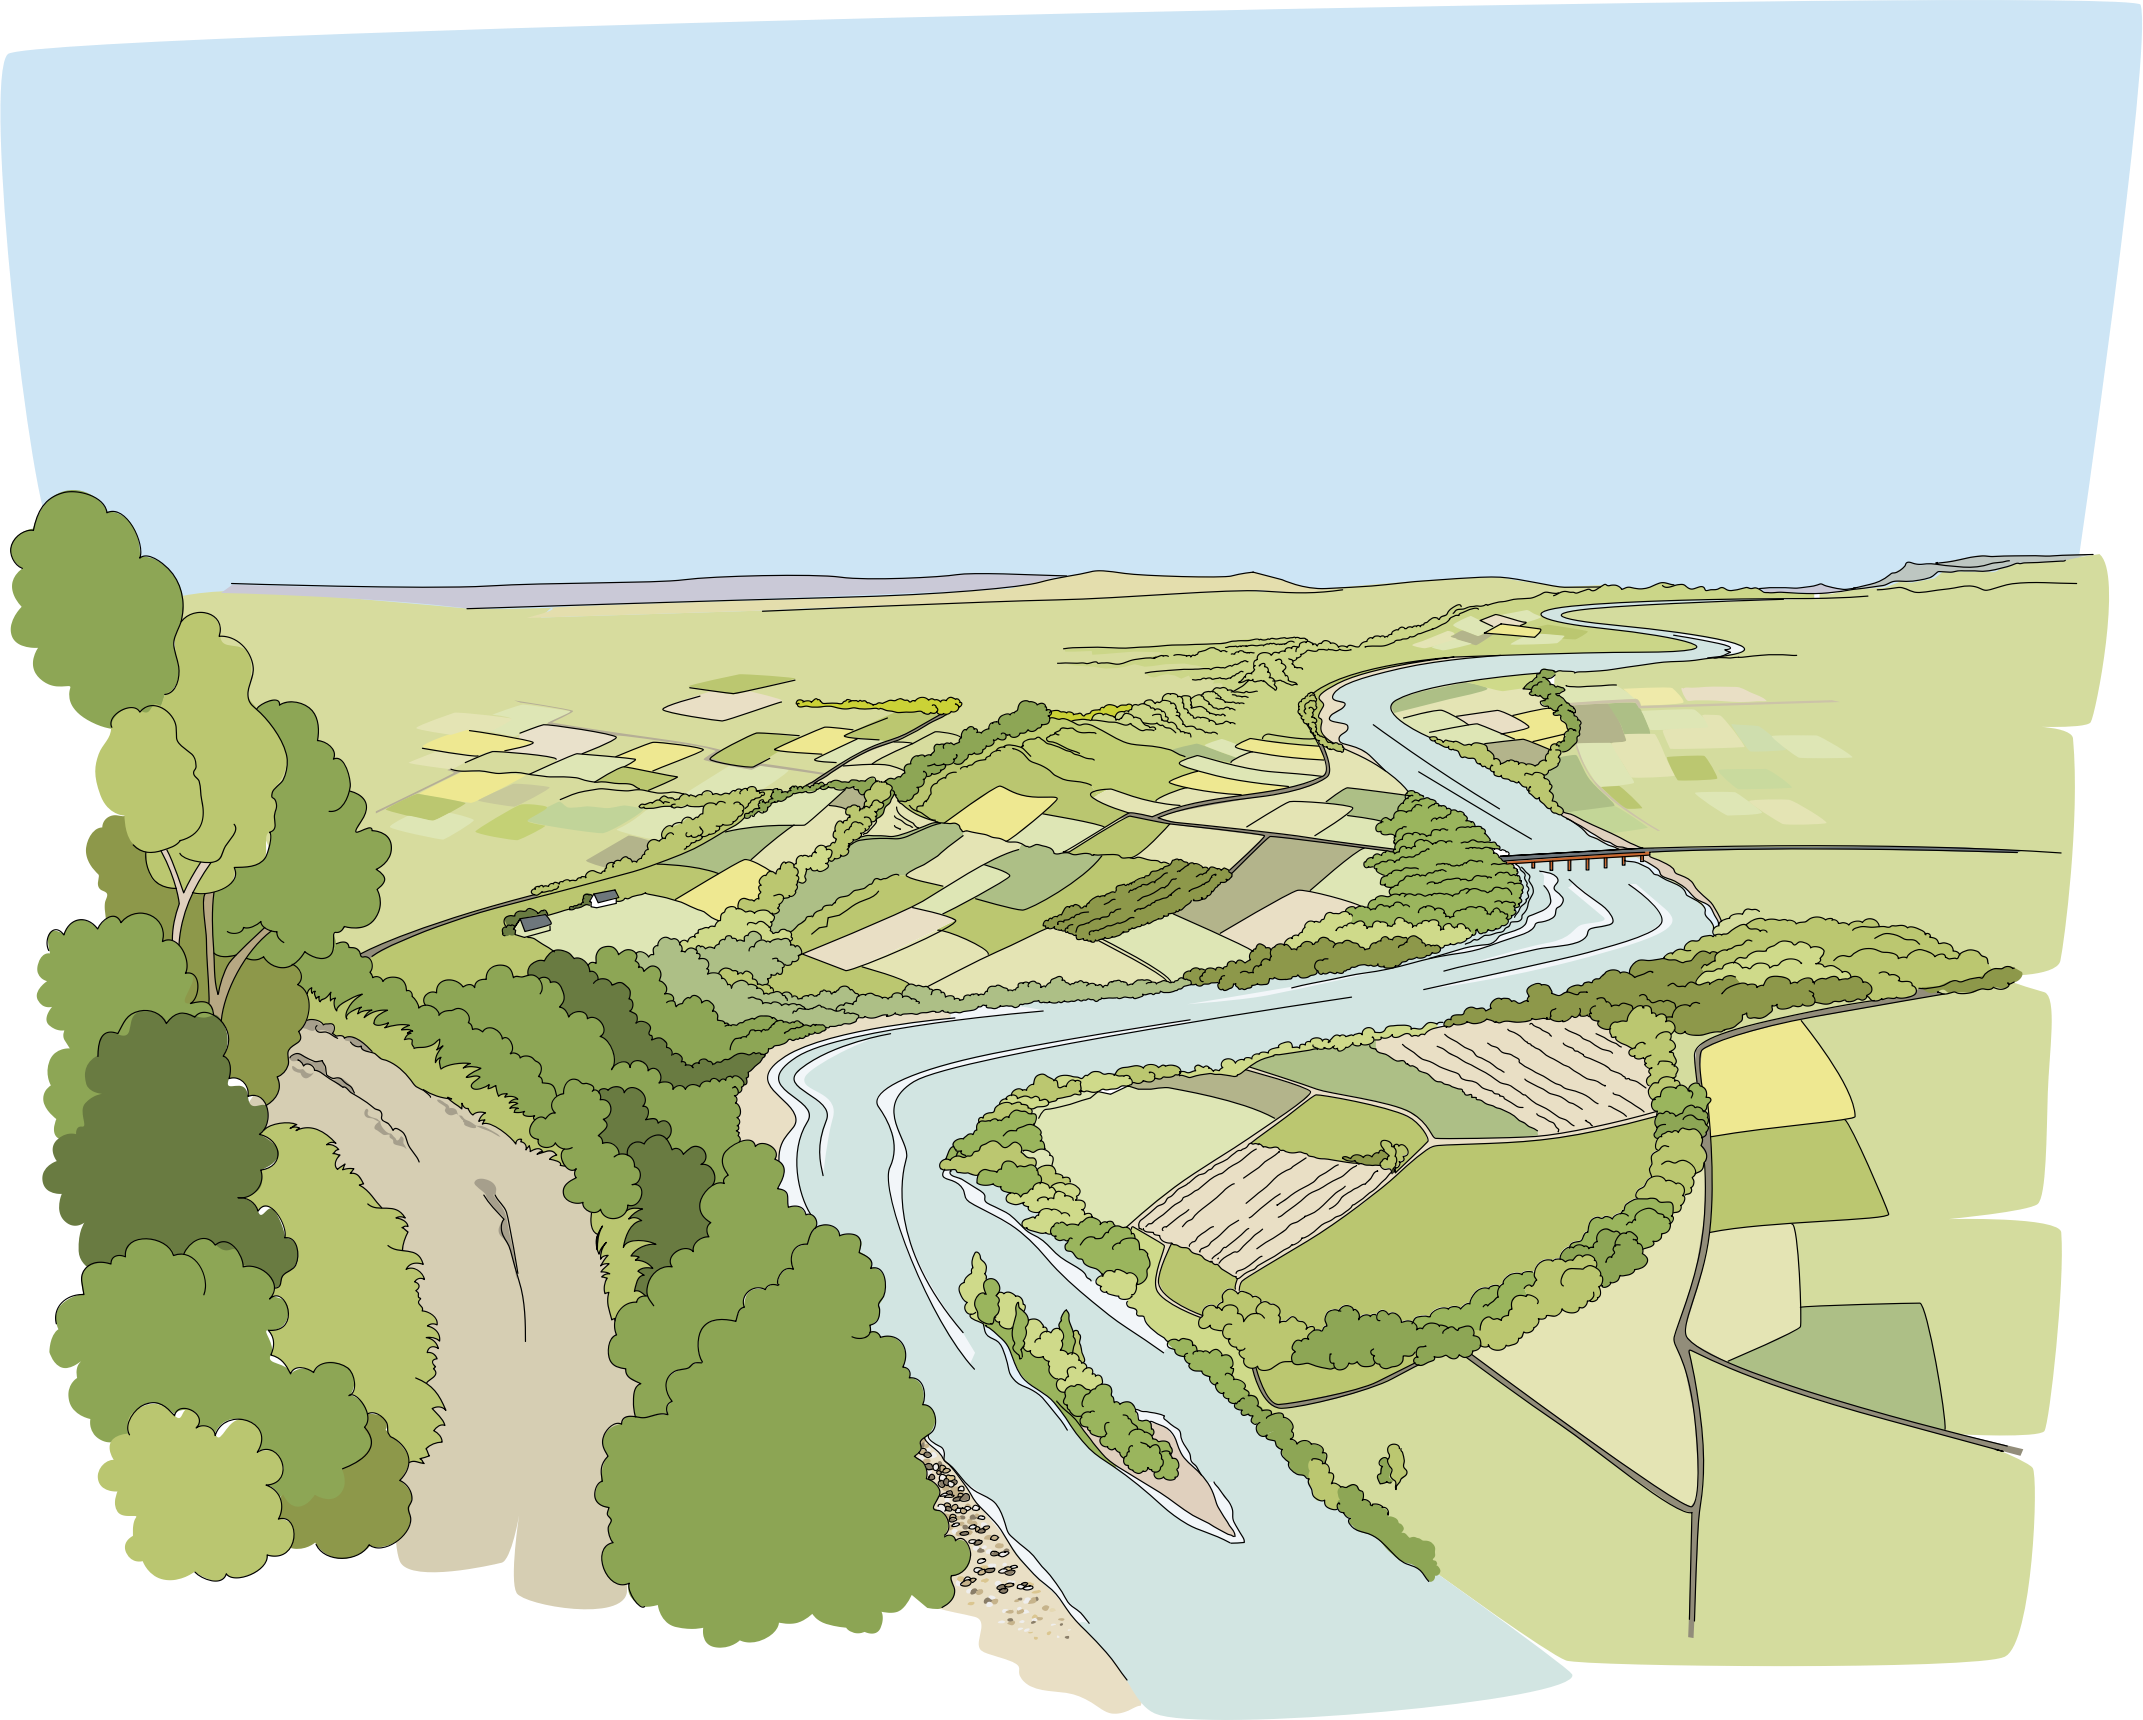 River clipart riviere. Big image png